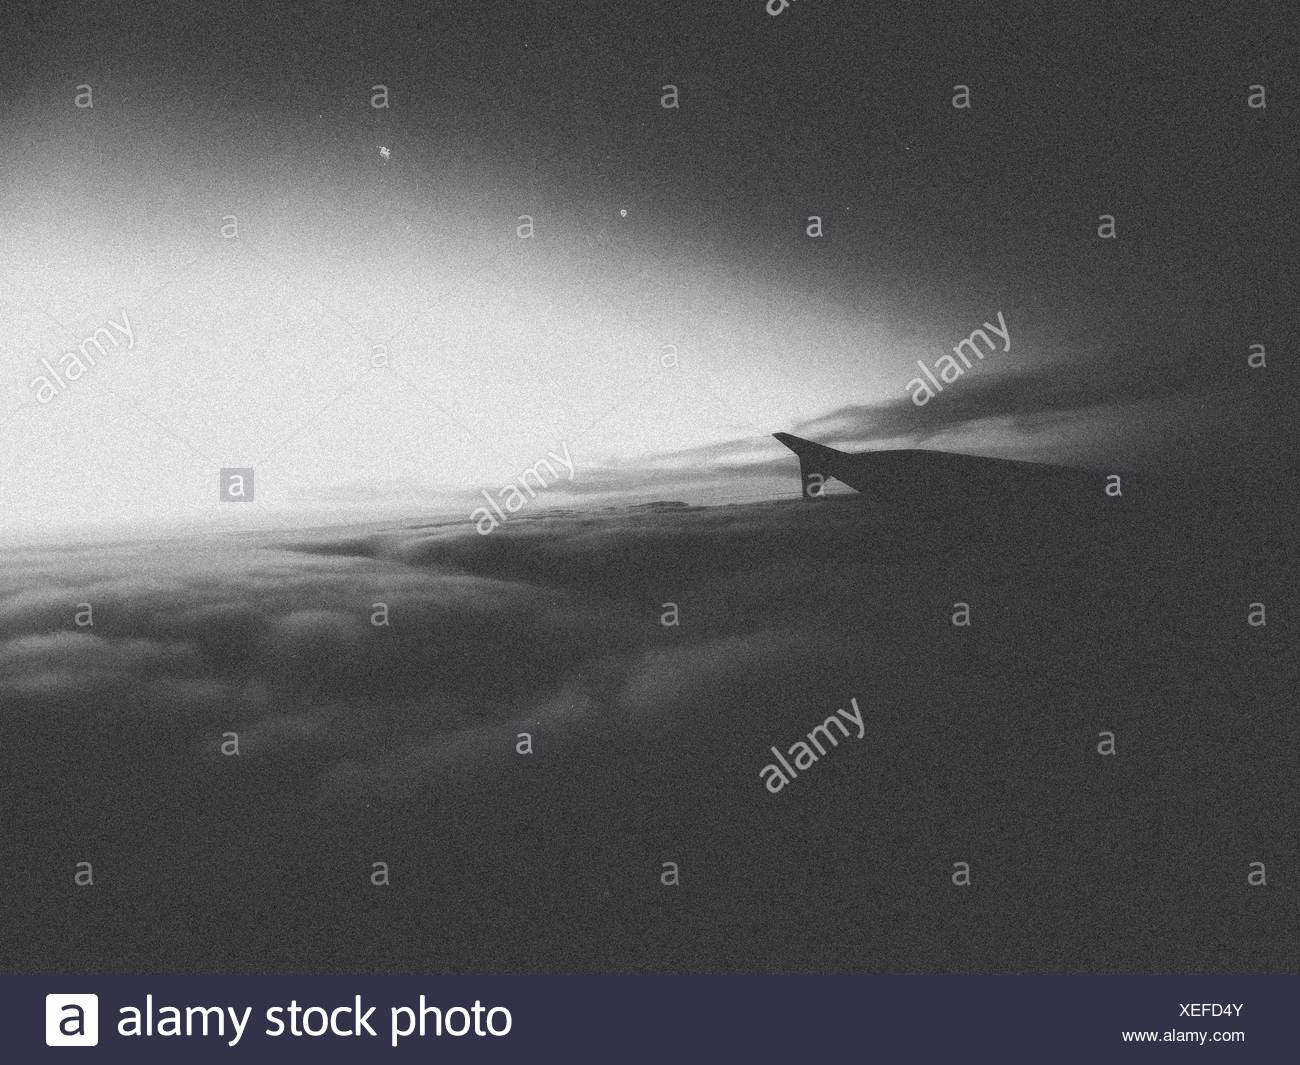 Airplane Wing Flying Over Cloudscape - Stock Image